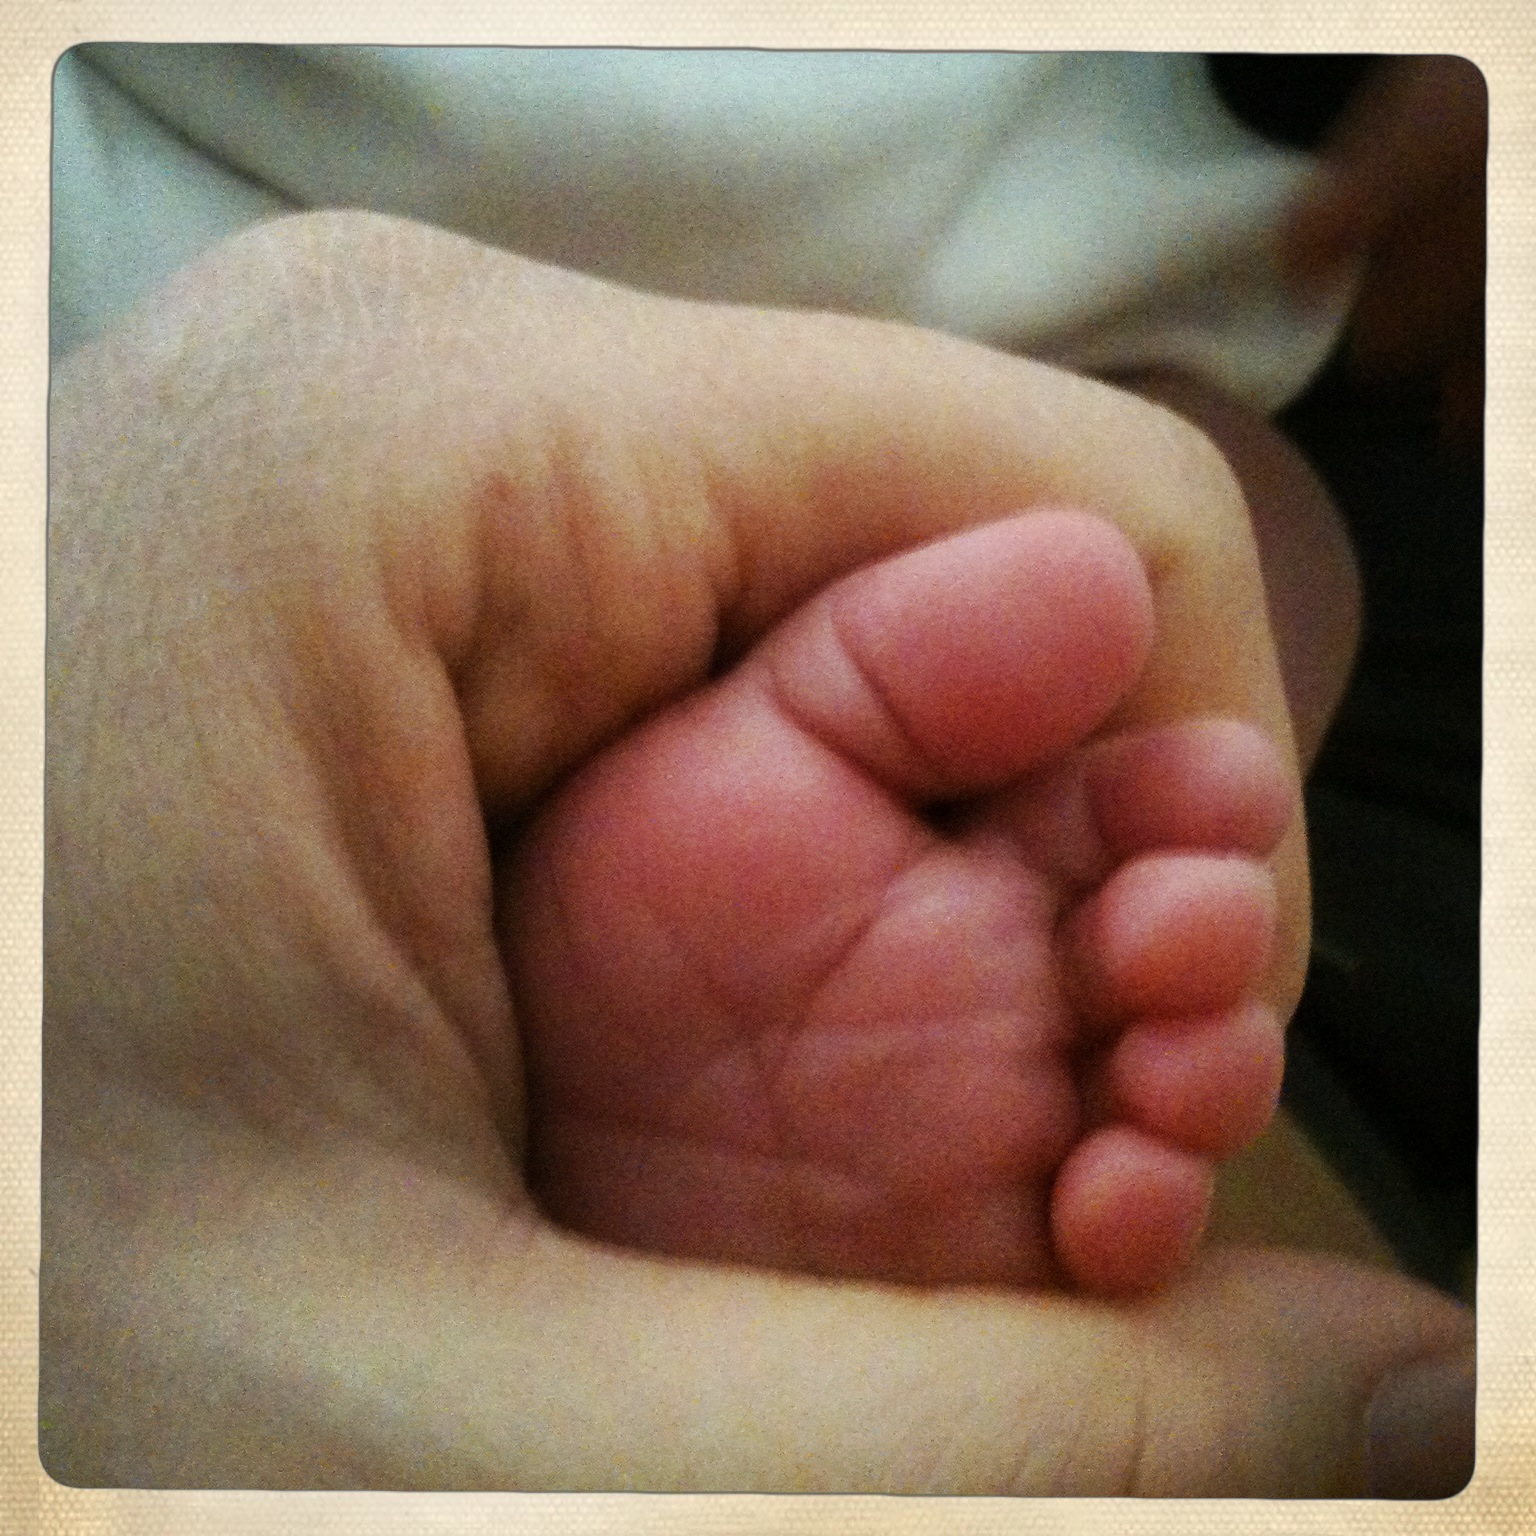 Newborn toes // 7 questions to ask for a peaceful birth